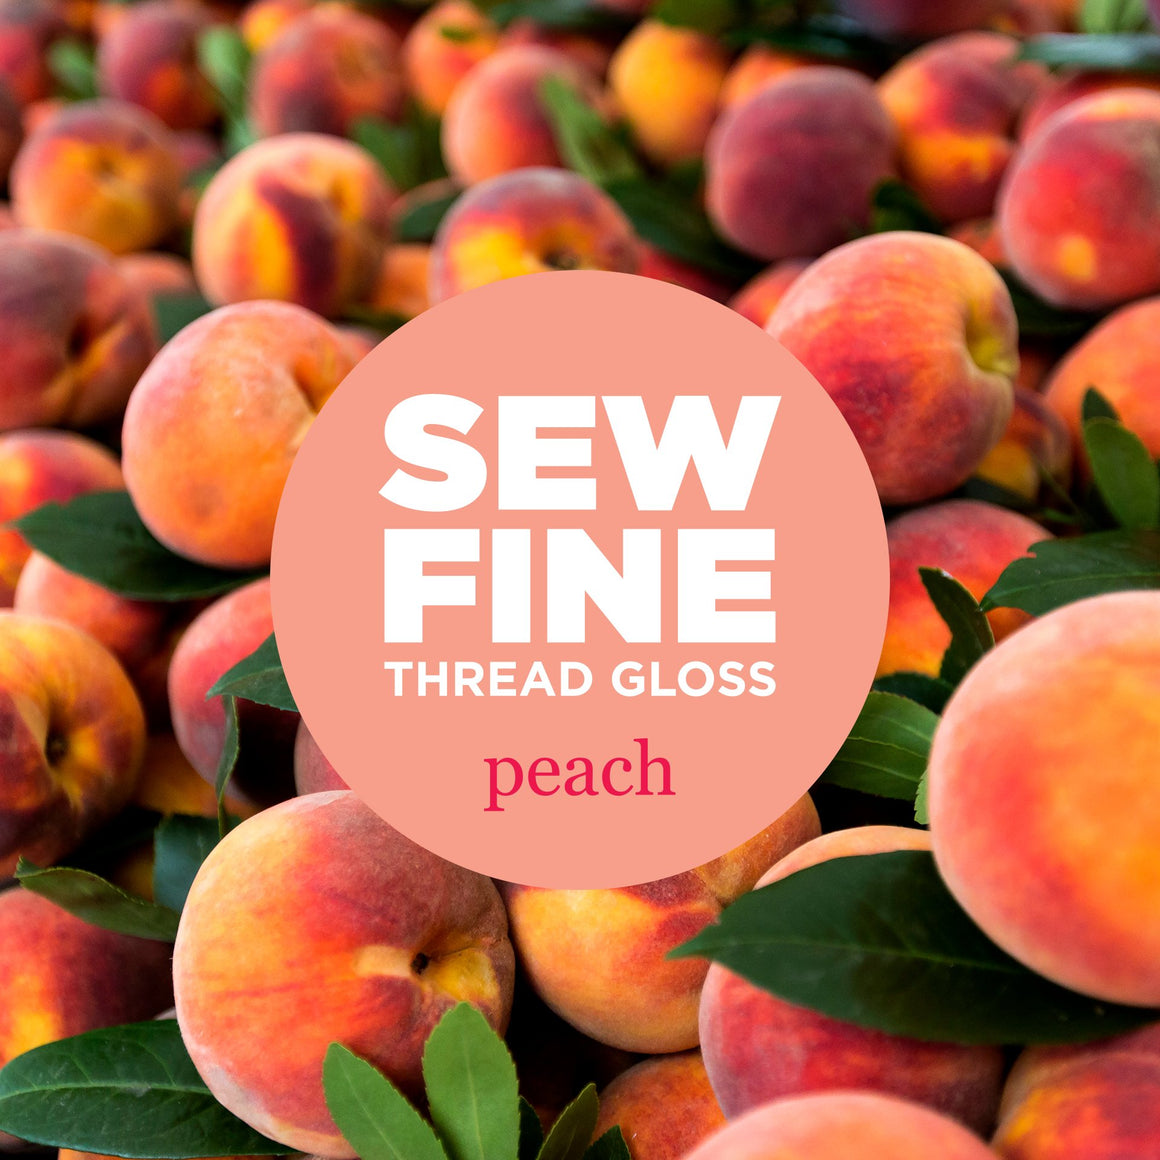 Peach -  Sew Fine Thread Gloss, Notion, Sew Fine, [variant_title] - Mad About Patchwork